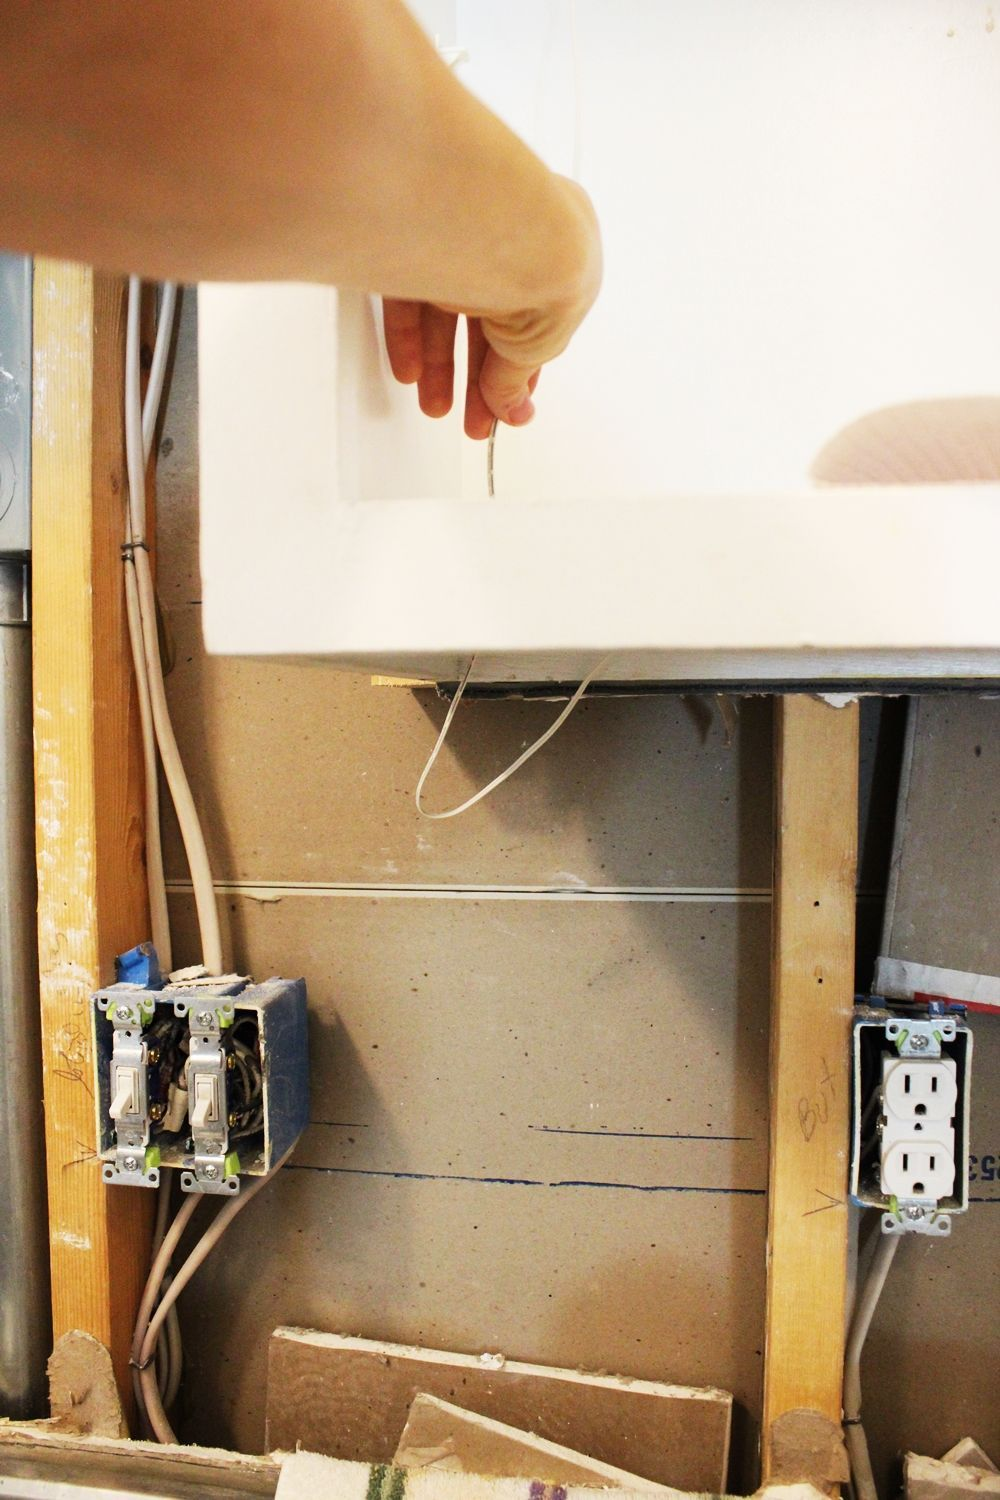 pull the excess wire up through the cabinet bottom